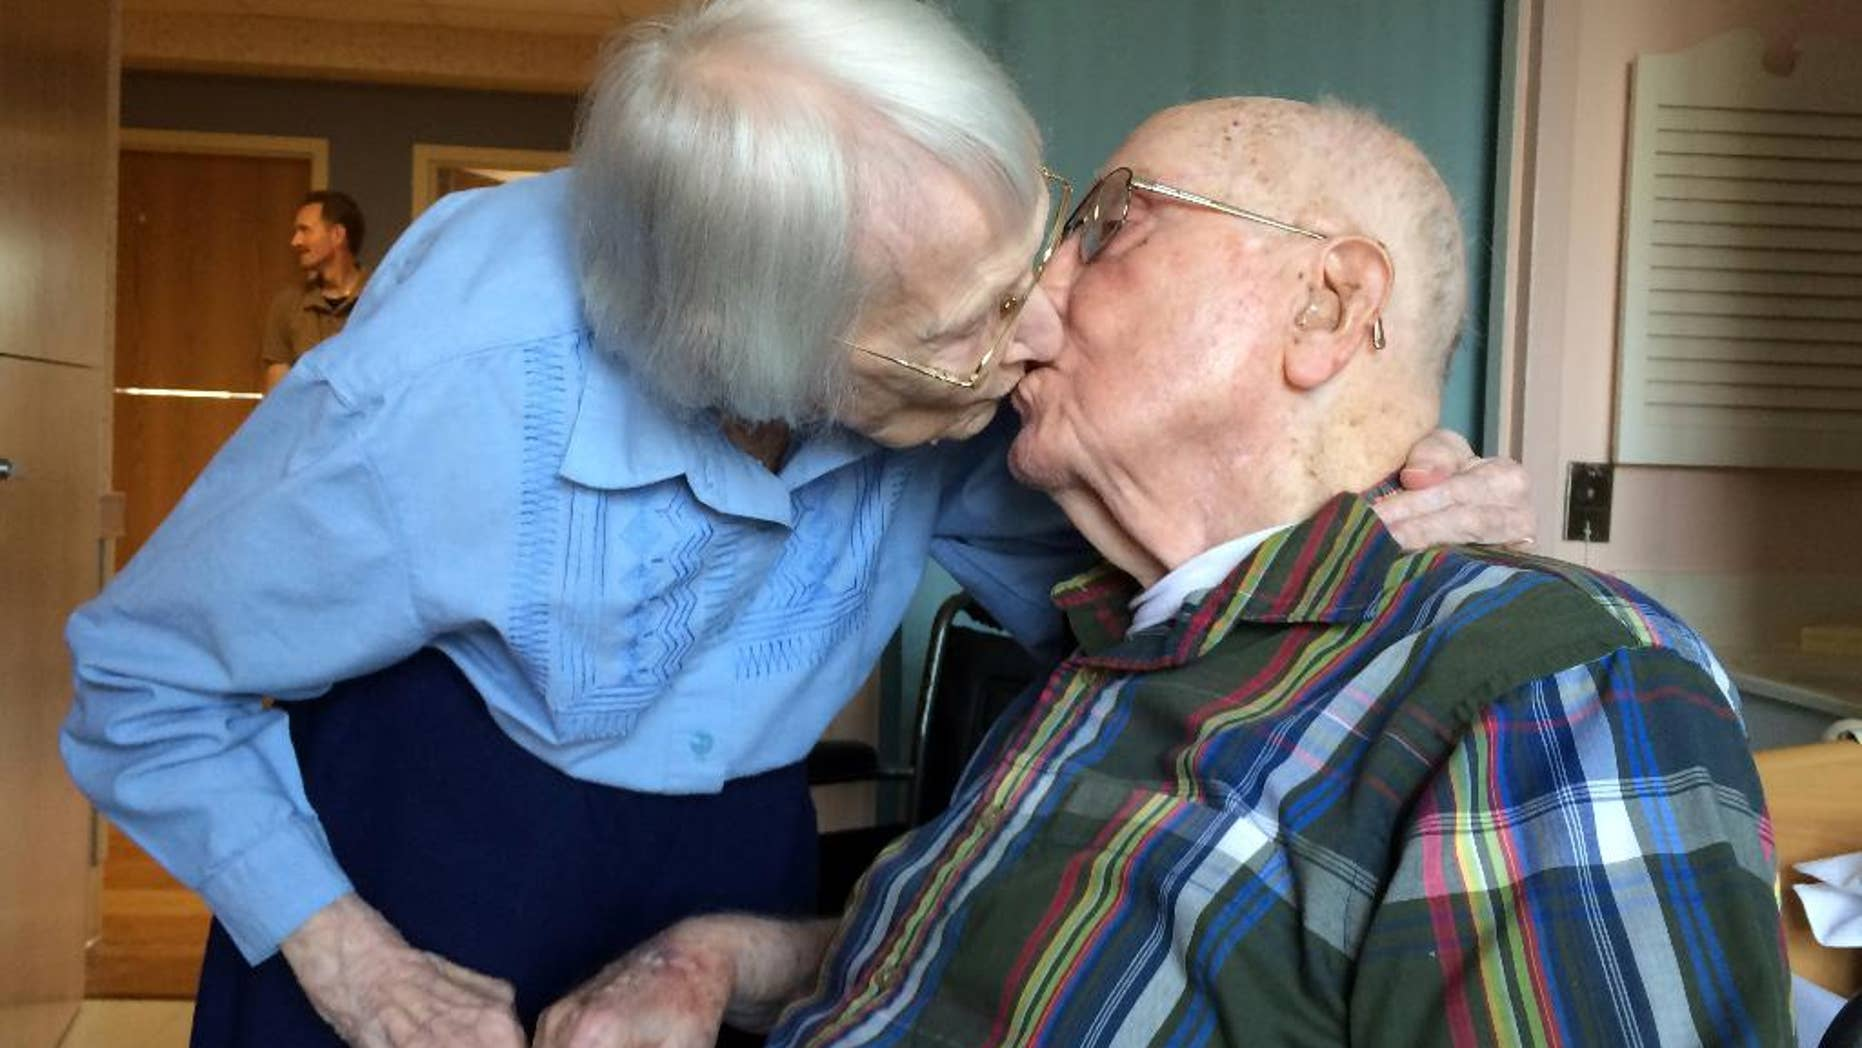 Walter and Leslie Kimmel, who are both 100 years old, enjoy a kiss as they celebrate their 75th wedding anniversary Tuesday, Aug. 18, 2015, at Charlestown Retirement Community in Catonsville, Md. The Kimmels met at Emmanuel Lutheran Church in Baltimore when they were 22 years old. Leslie played the organ and Walter sang in the choir.  (Paul J. Kessler/WBFF-TV via AP)